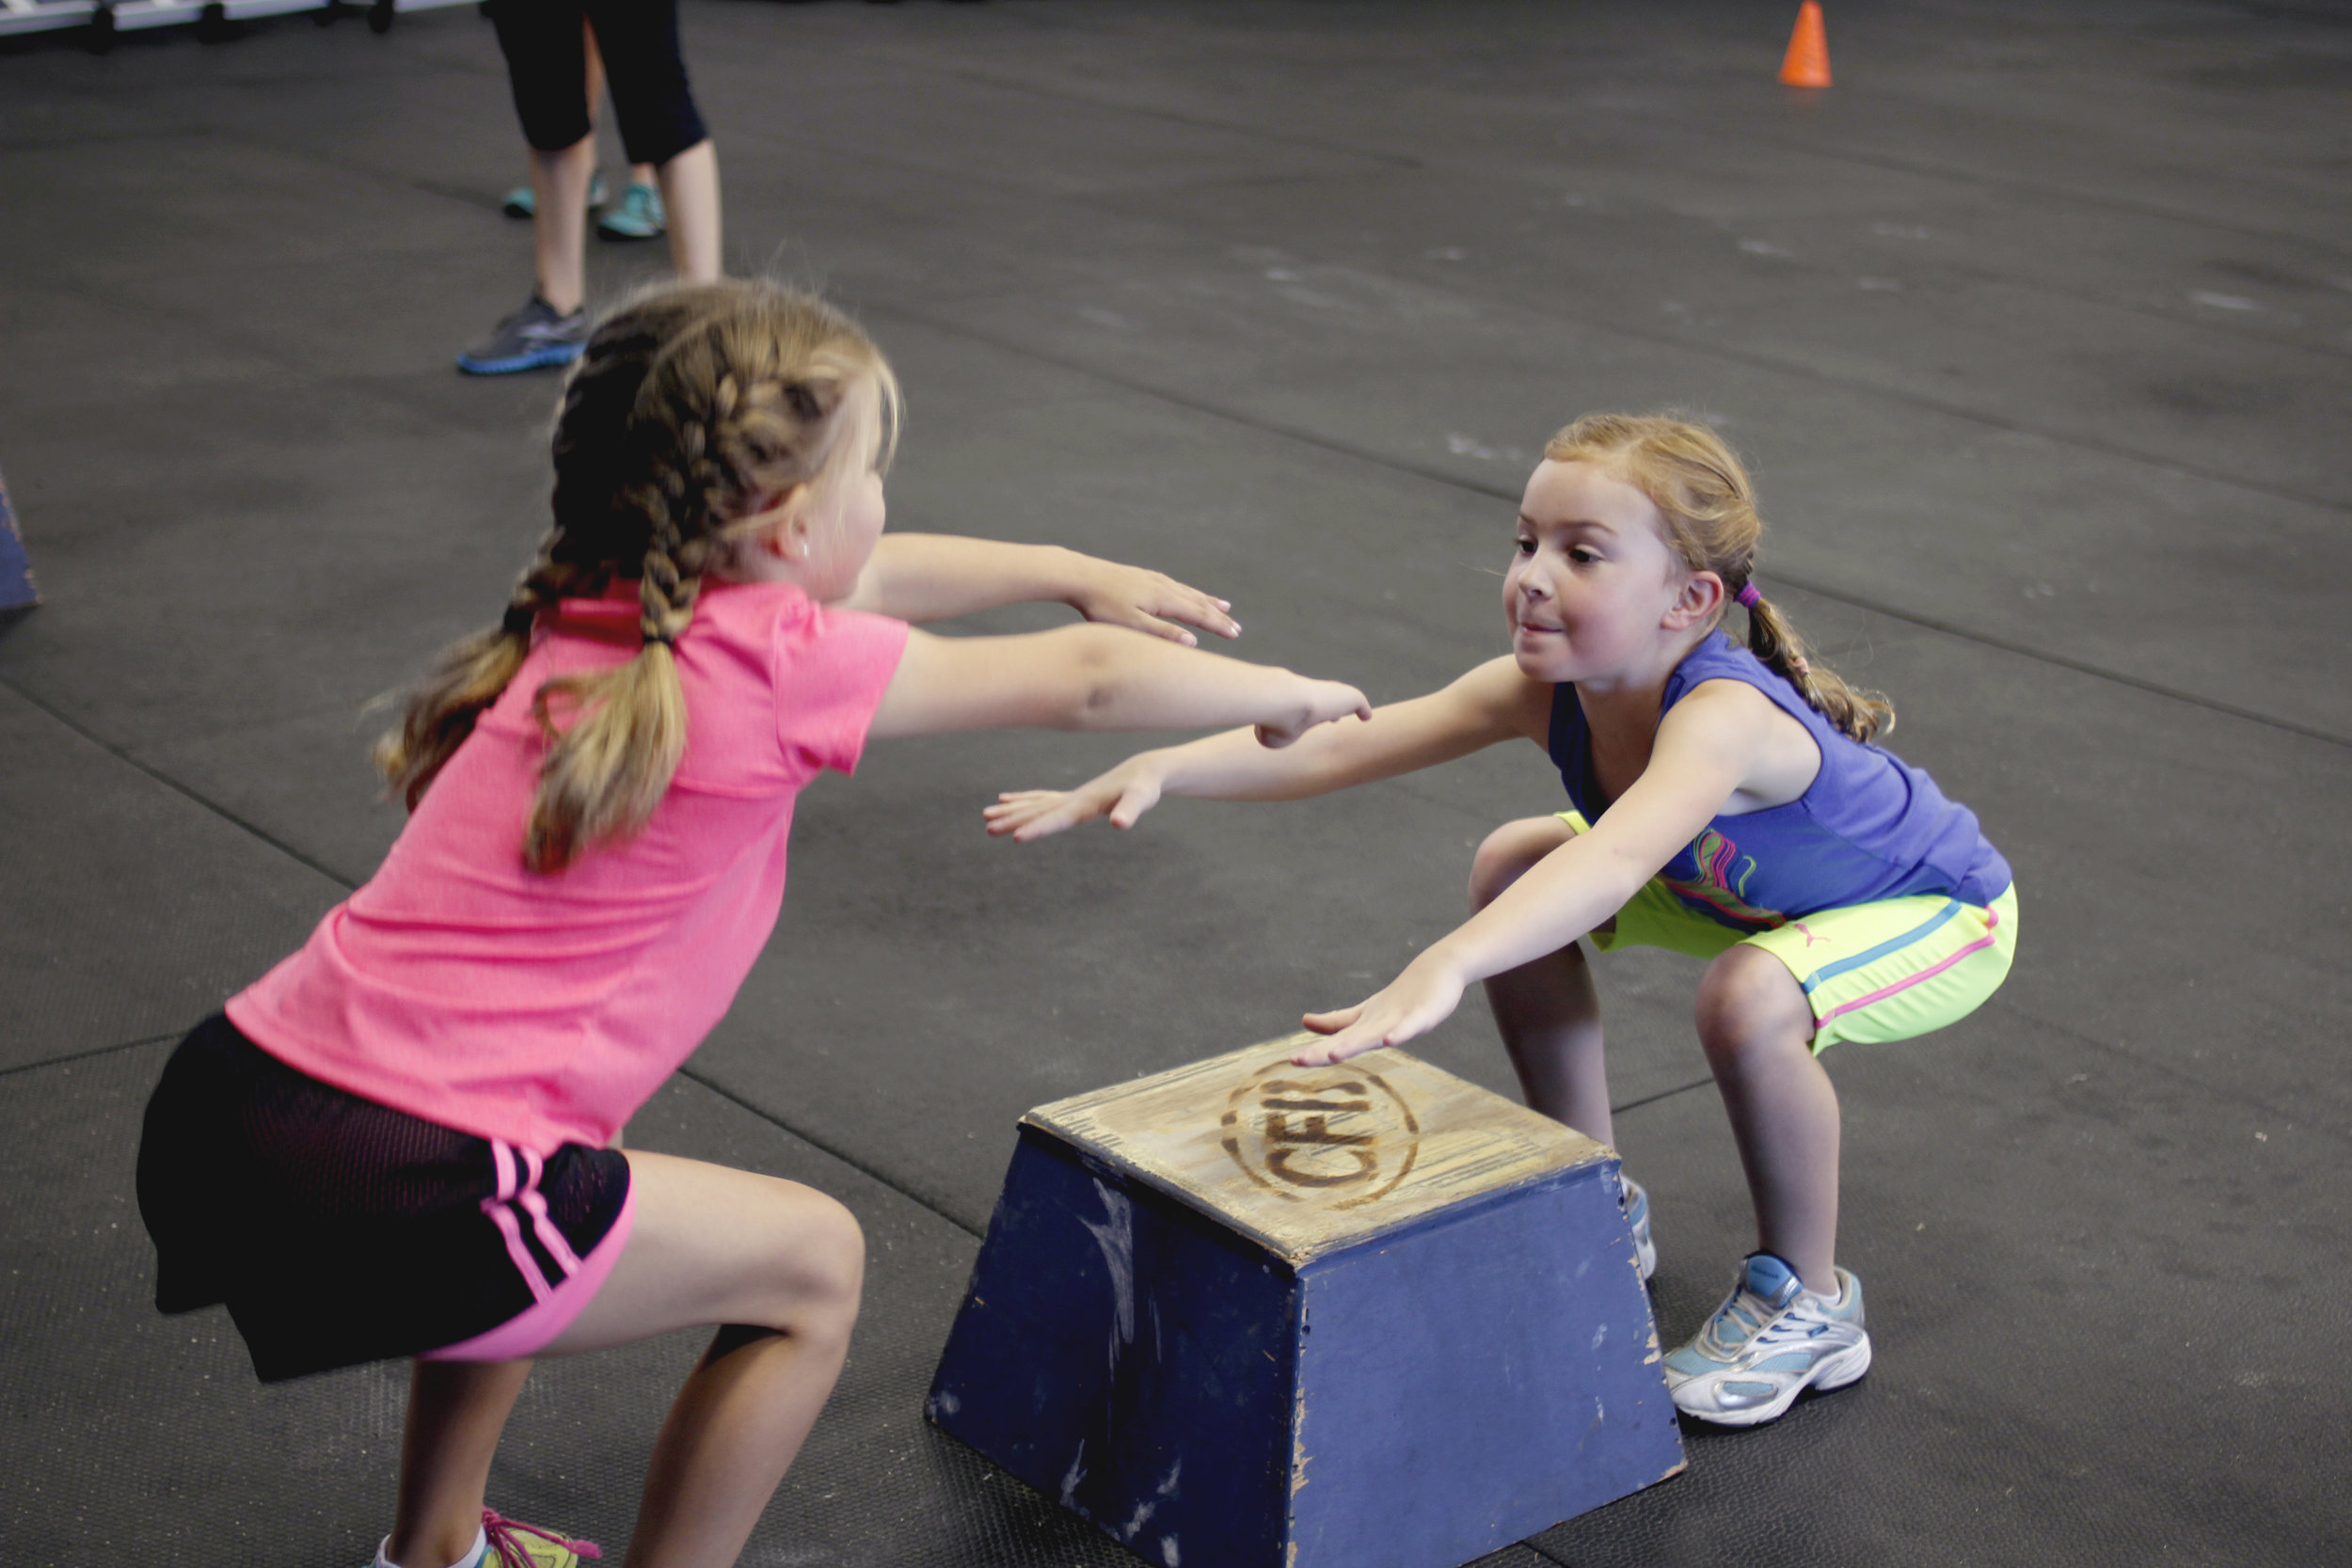 Fun 1-hour session - Sundays at 1 p.m. at CrossFit Brighton and after-school program at Farms Intermediate School!